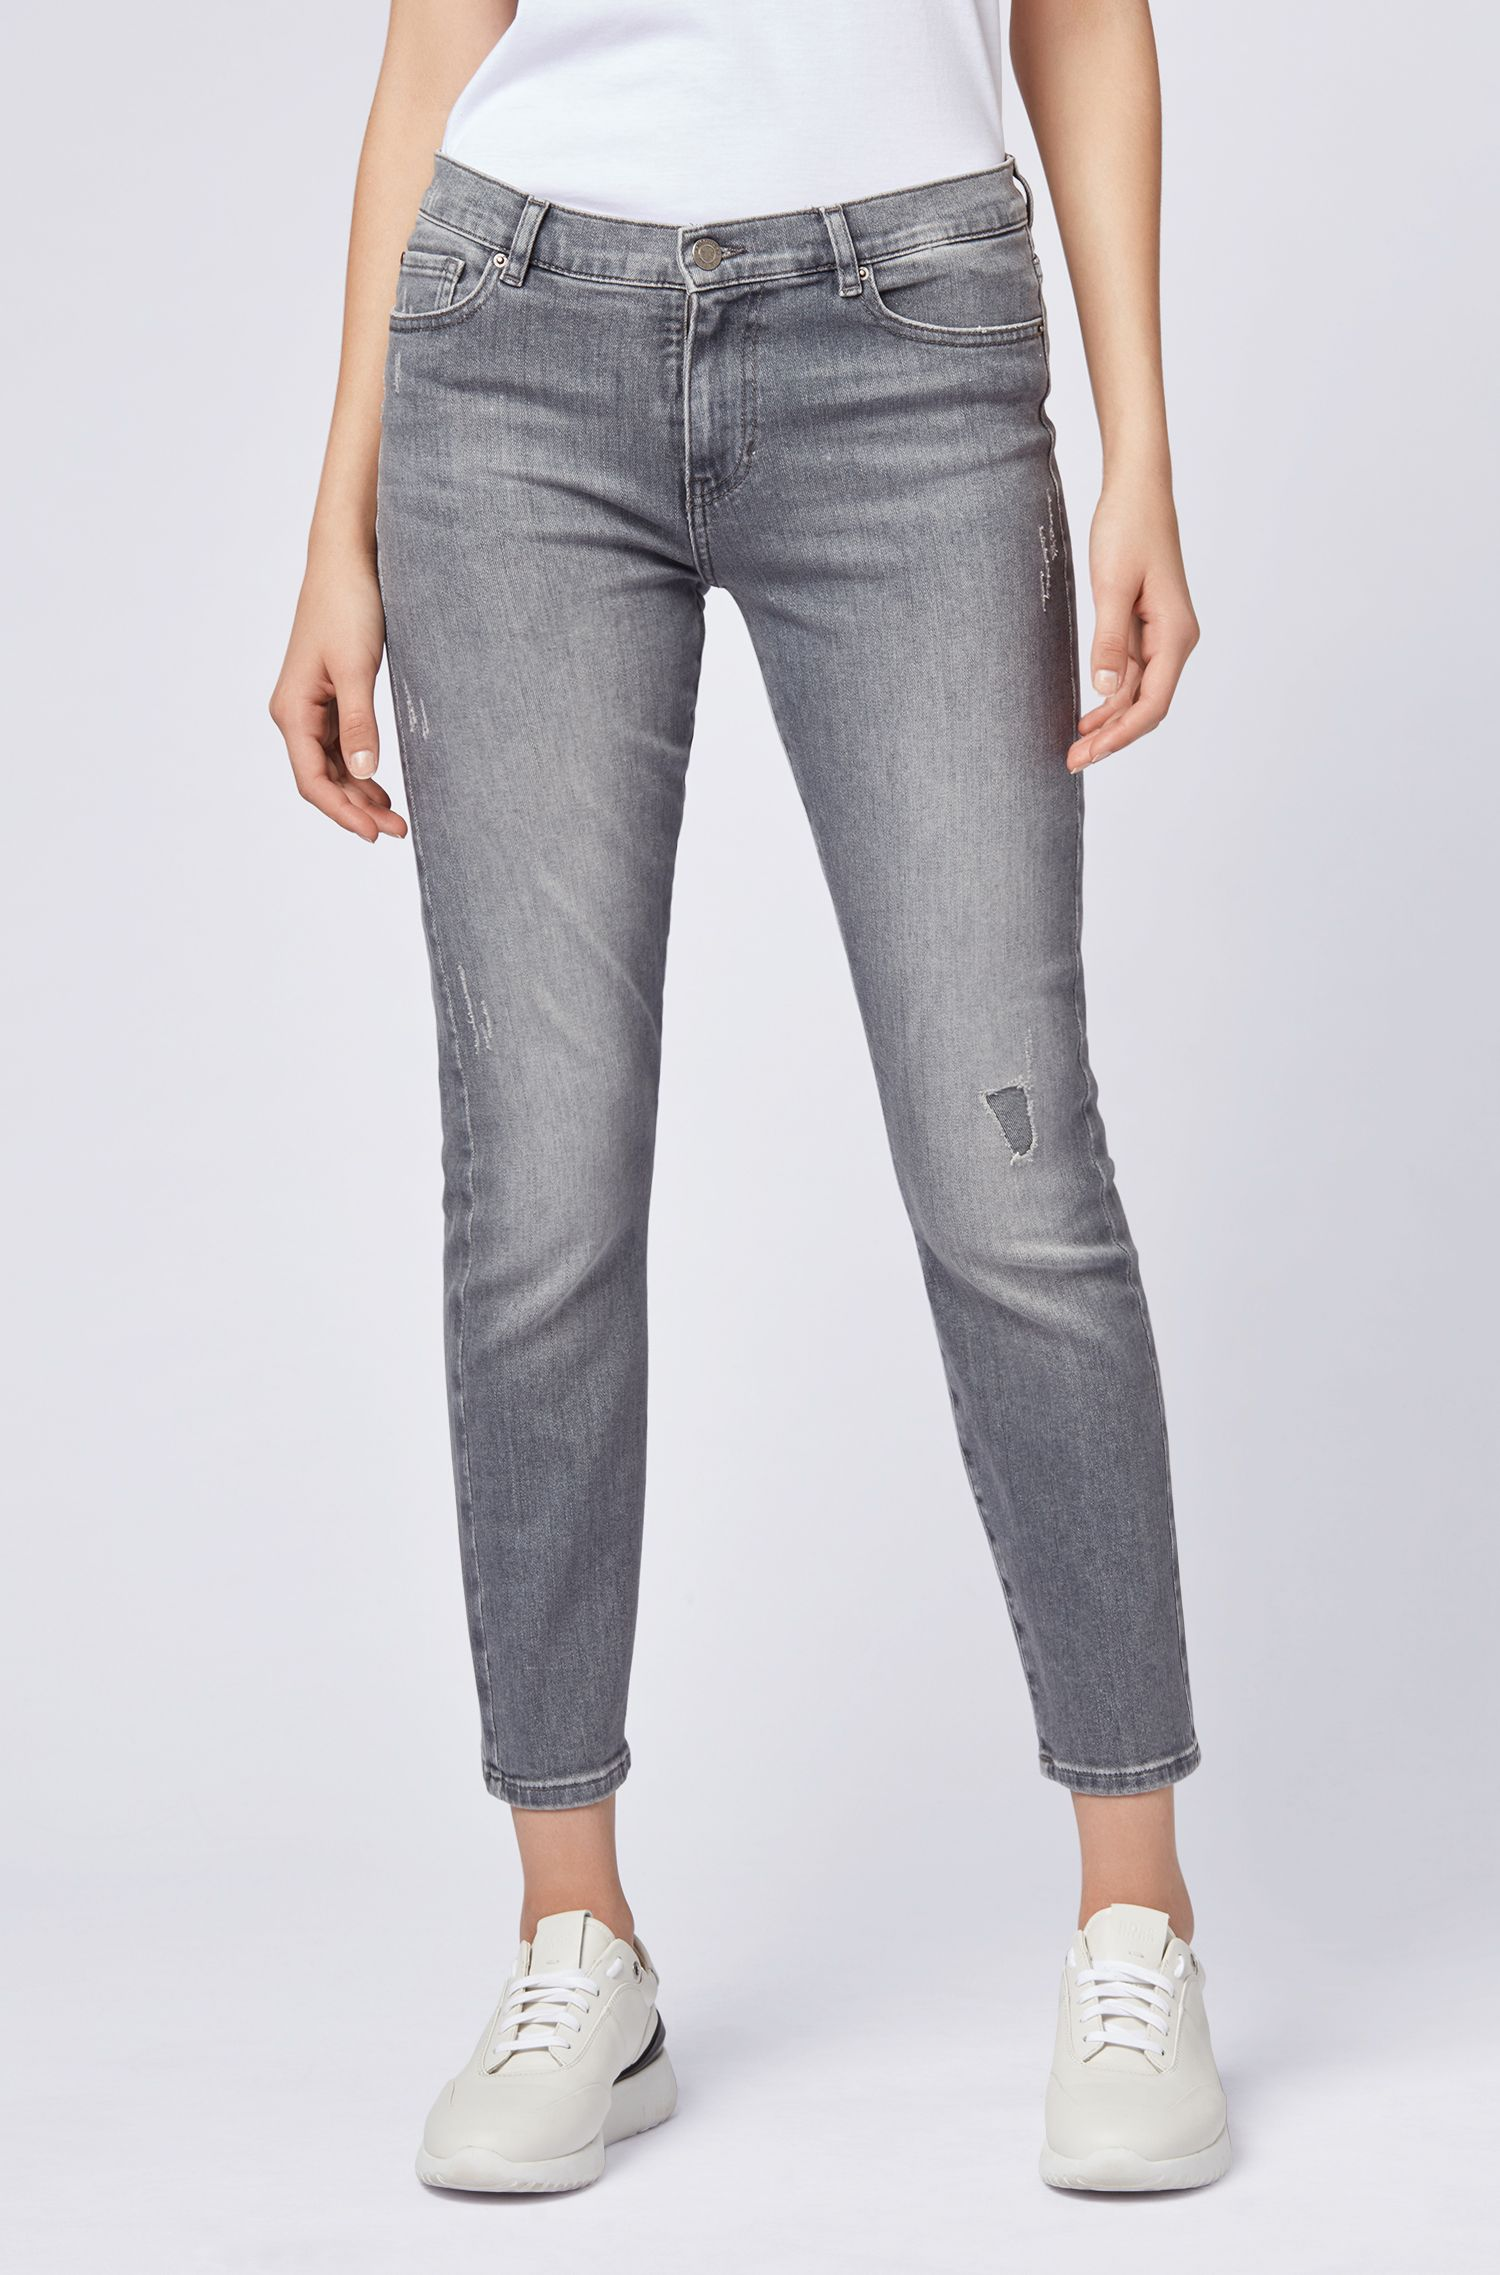 Jean Slim Fit en denim gris, Gris